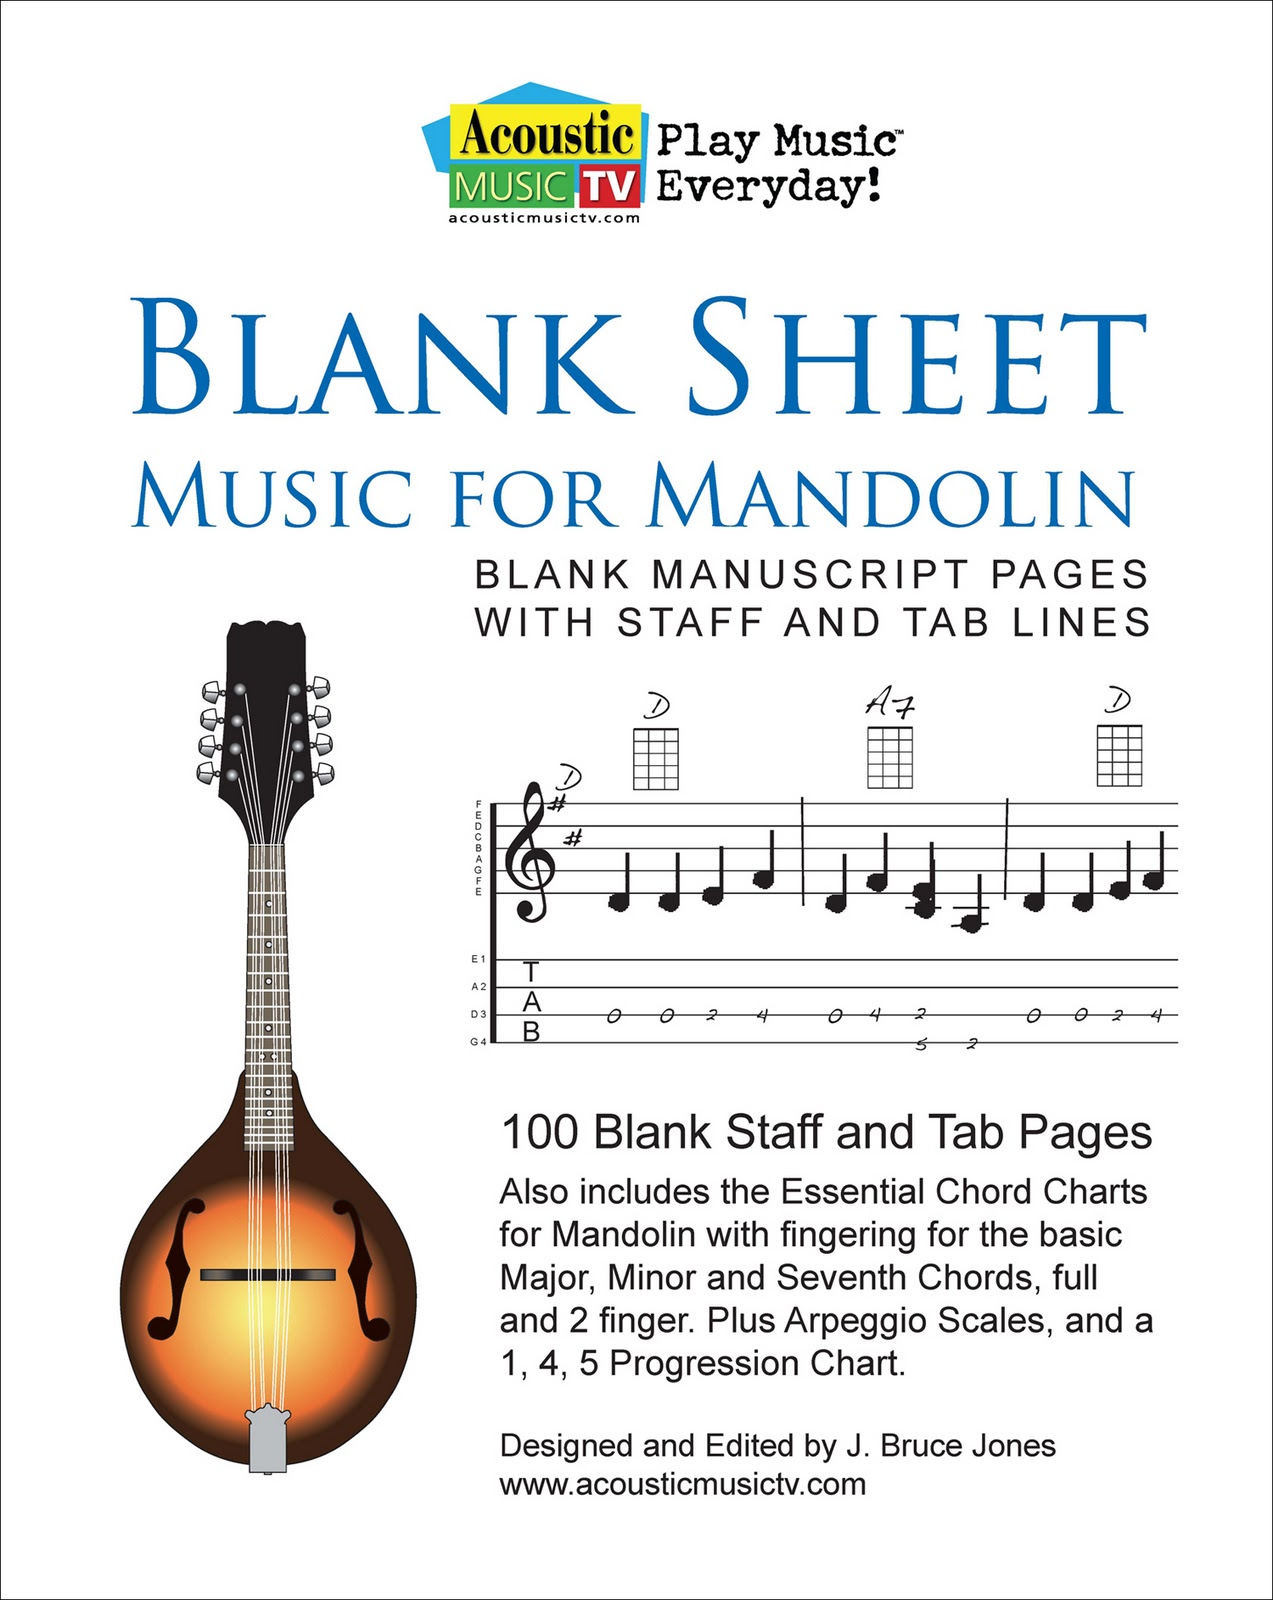 Acoustic music tv blank sheet music mandolin blank sheet music for mandolin blank manuscript pages with staff and tab lines hexwebz Images